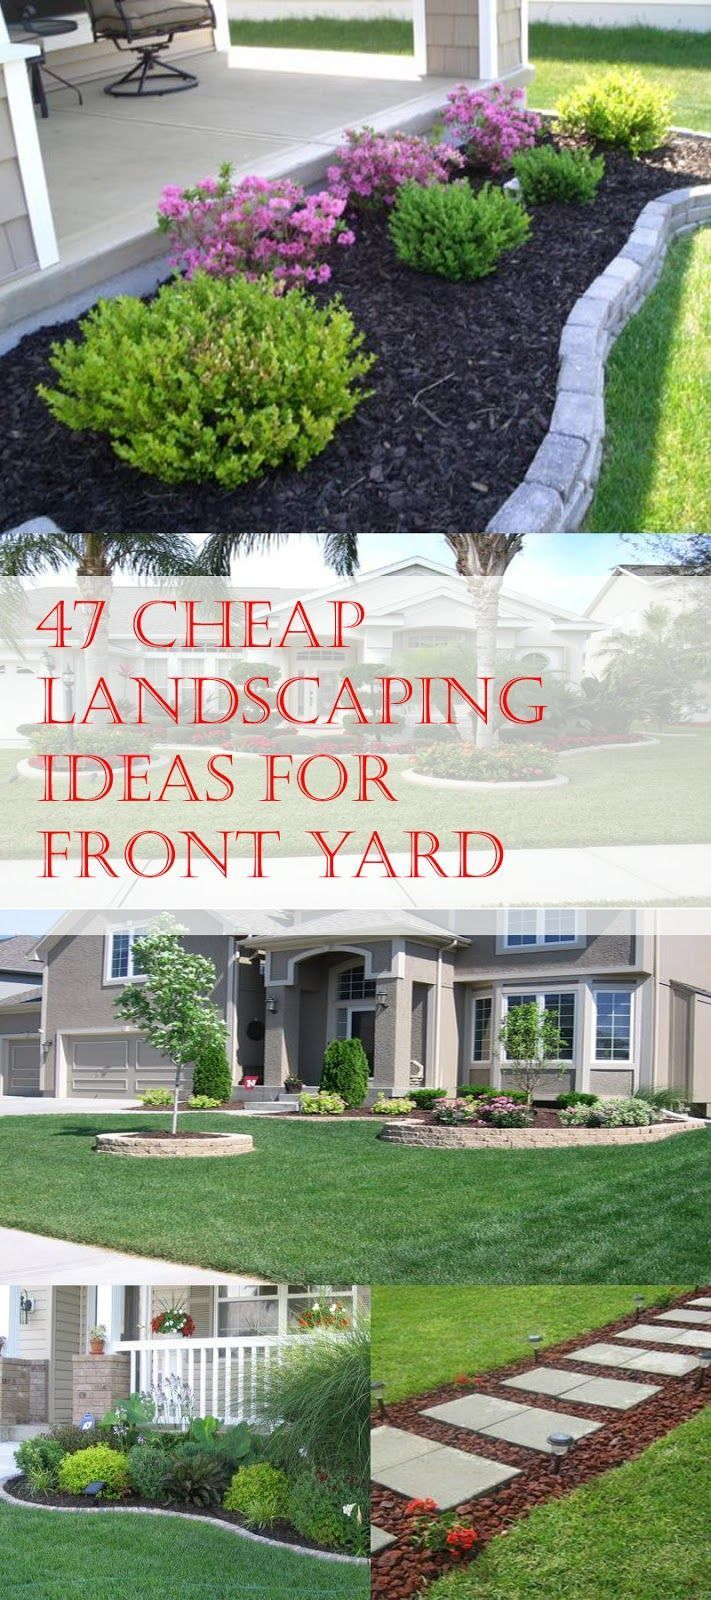 47 Cheap Landscape Ideas For The Front Yard Cheap Front Ideas Landscaping In 2020 Cheap Landscaping Ideas For Front Yard Cheap Landscaping Ideas Easy Landscaping